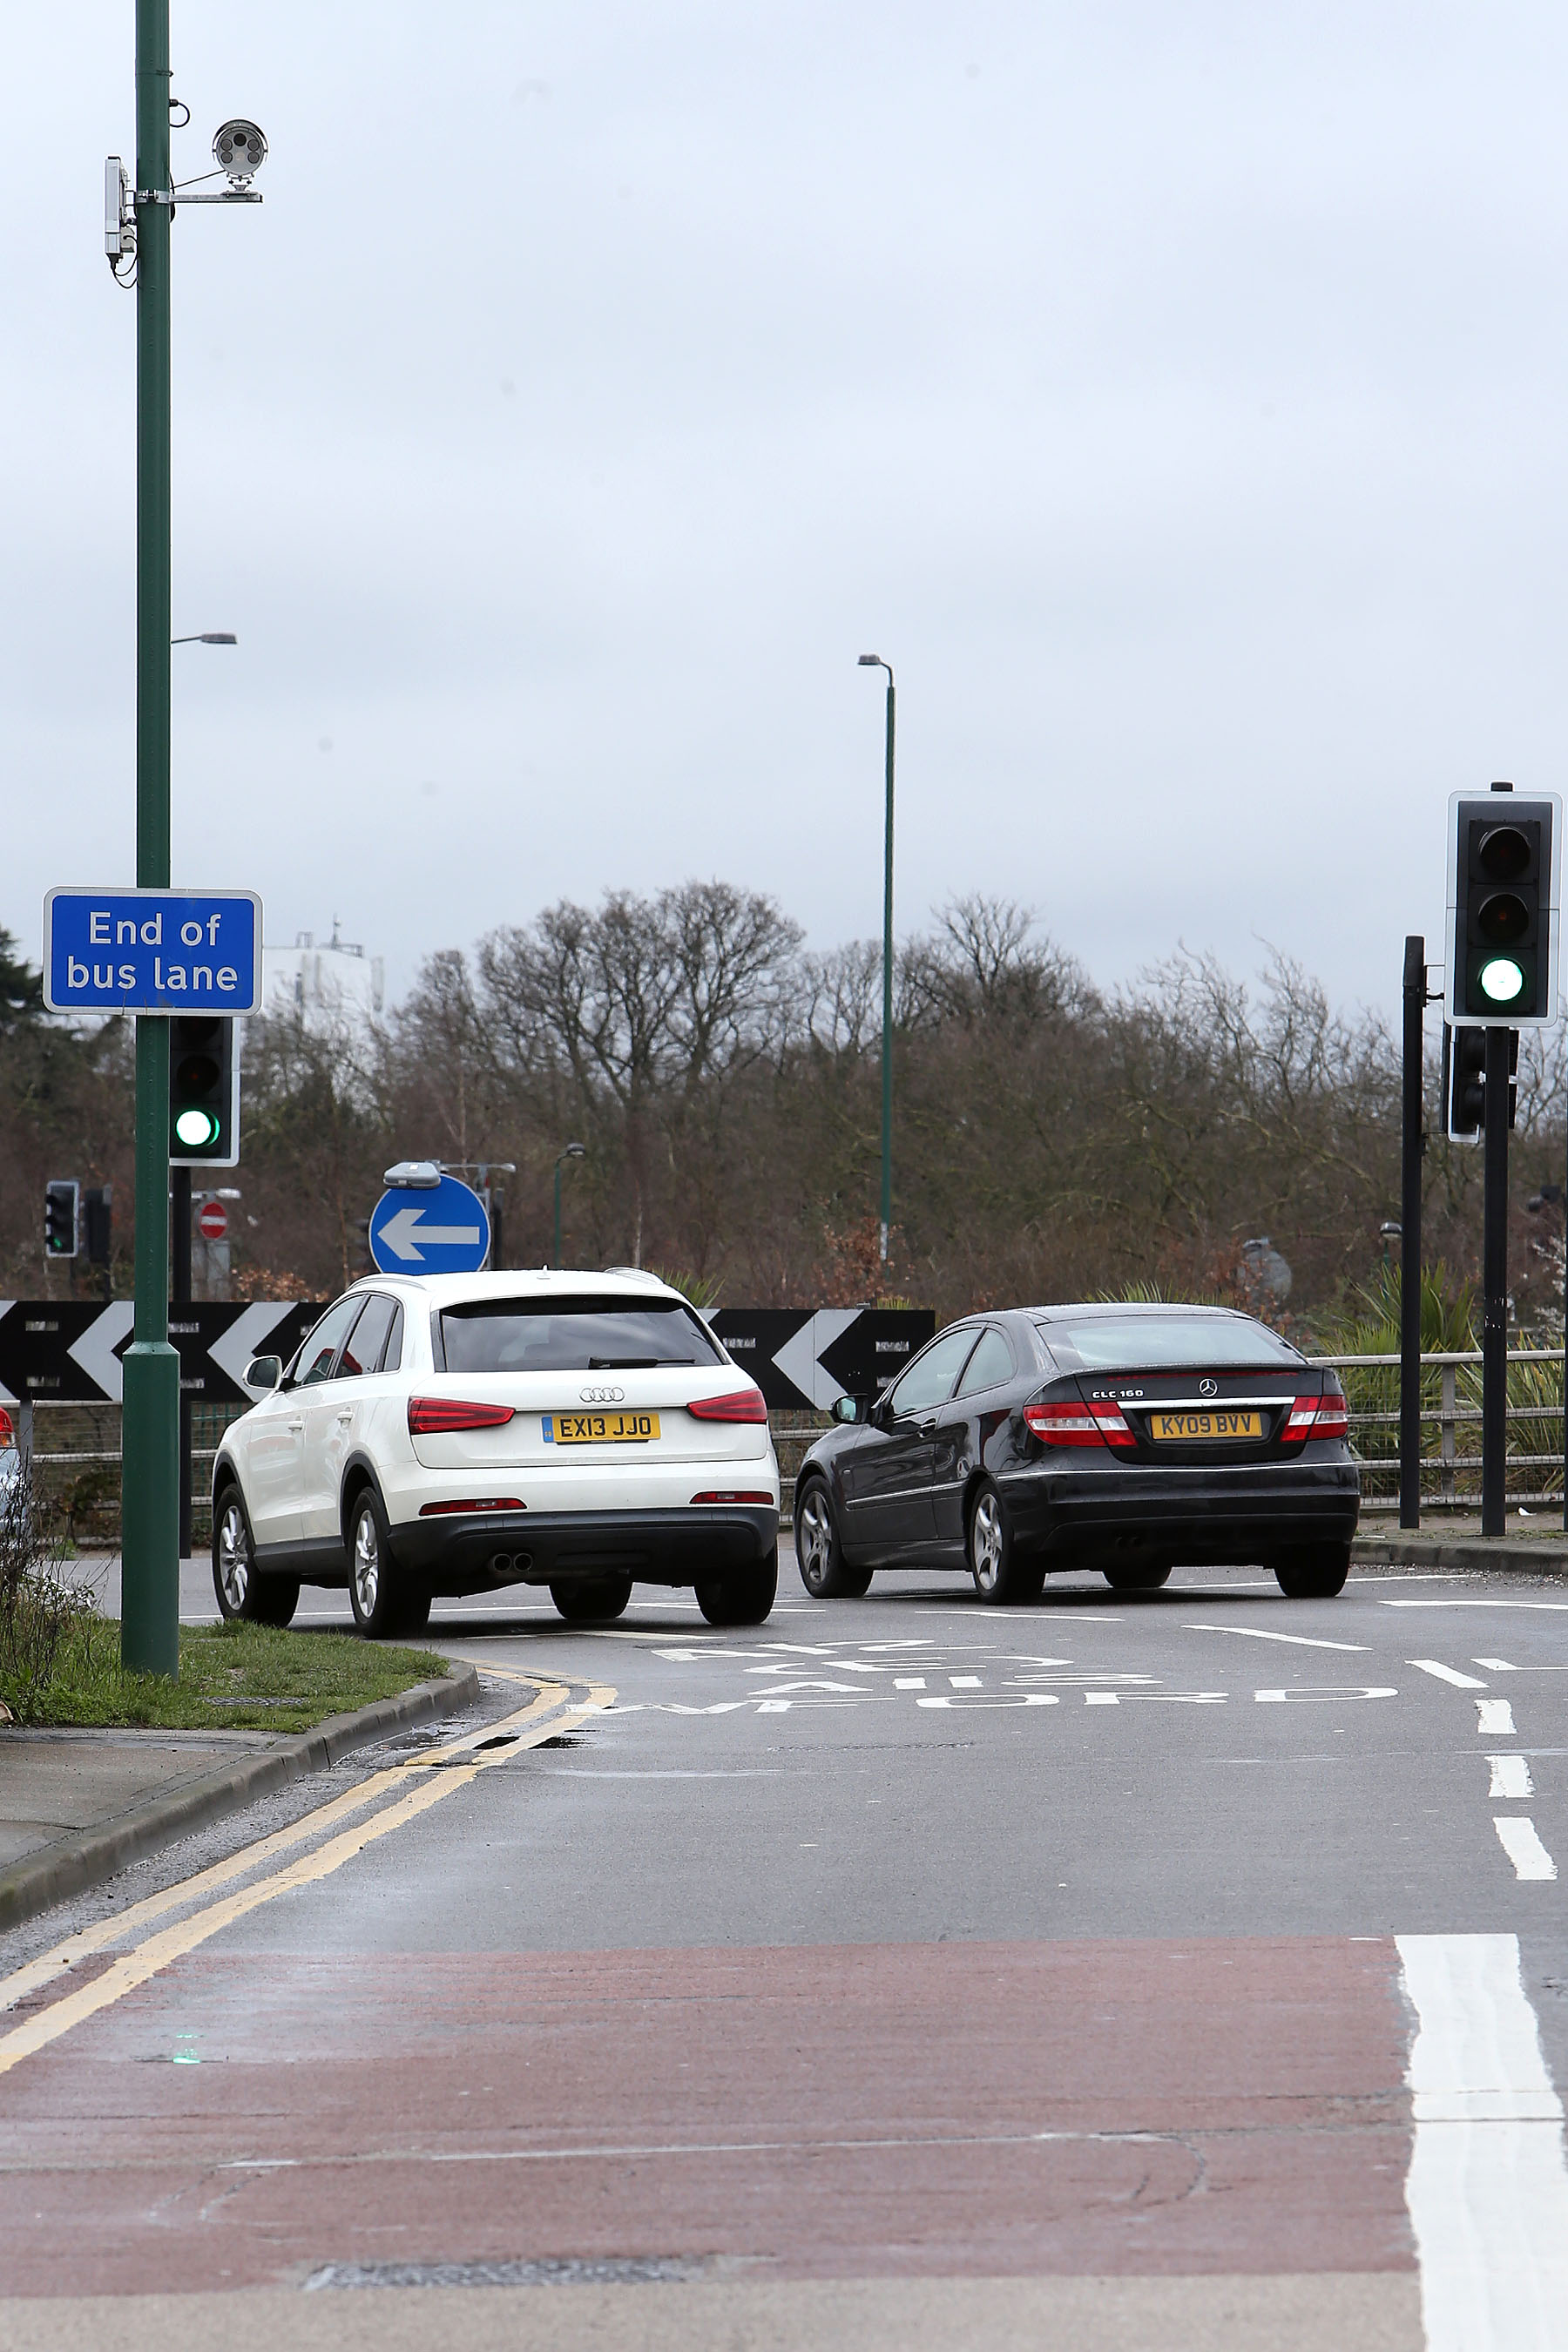 Council admits fault and switches off bus lane camera